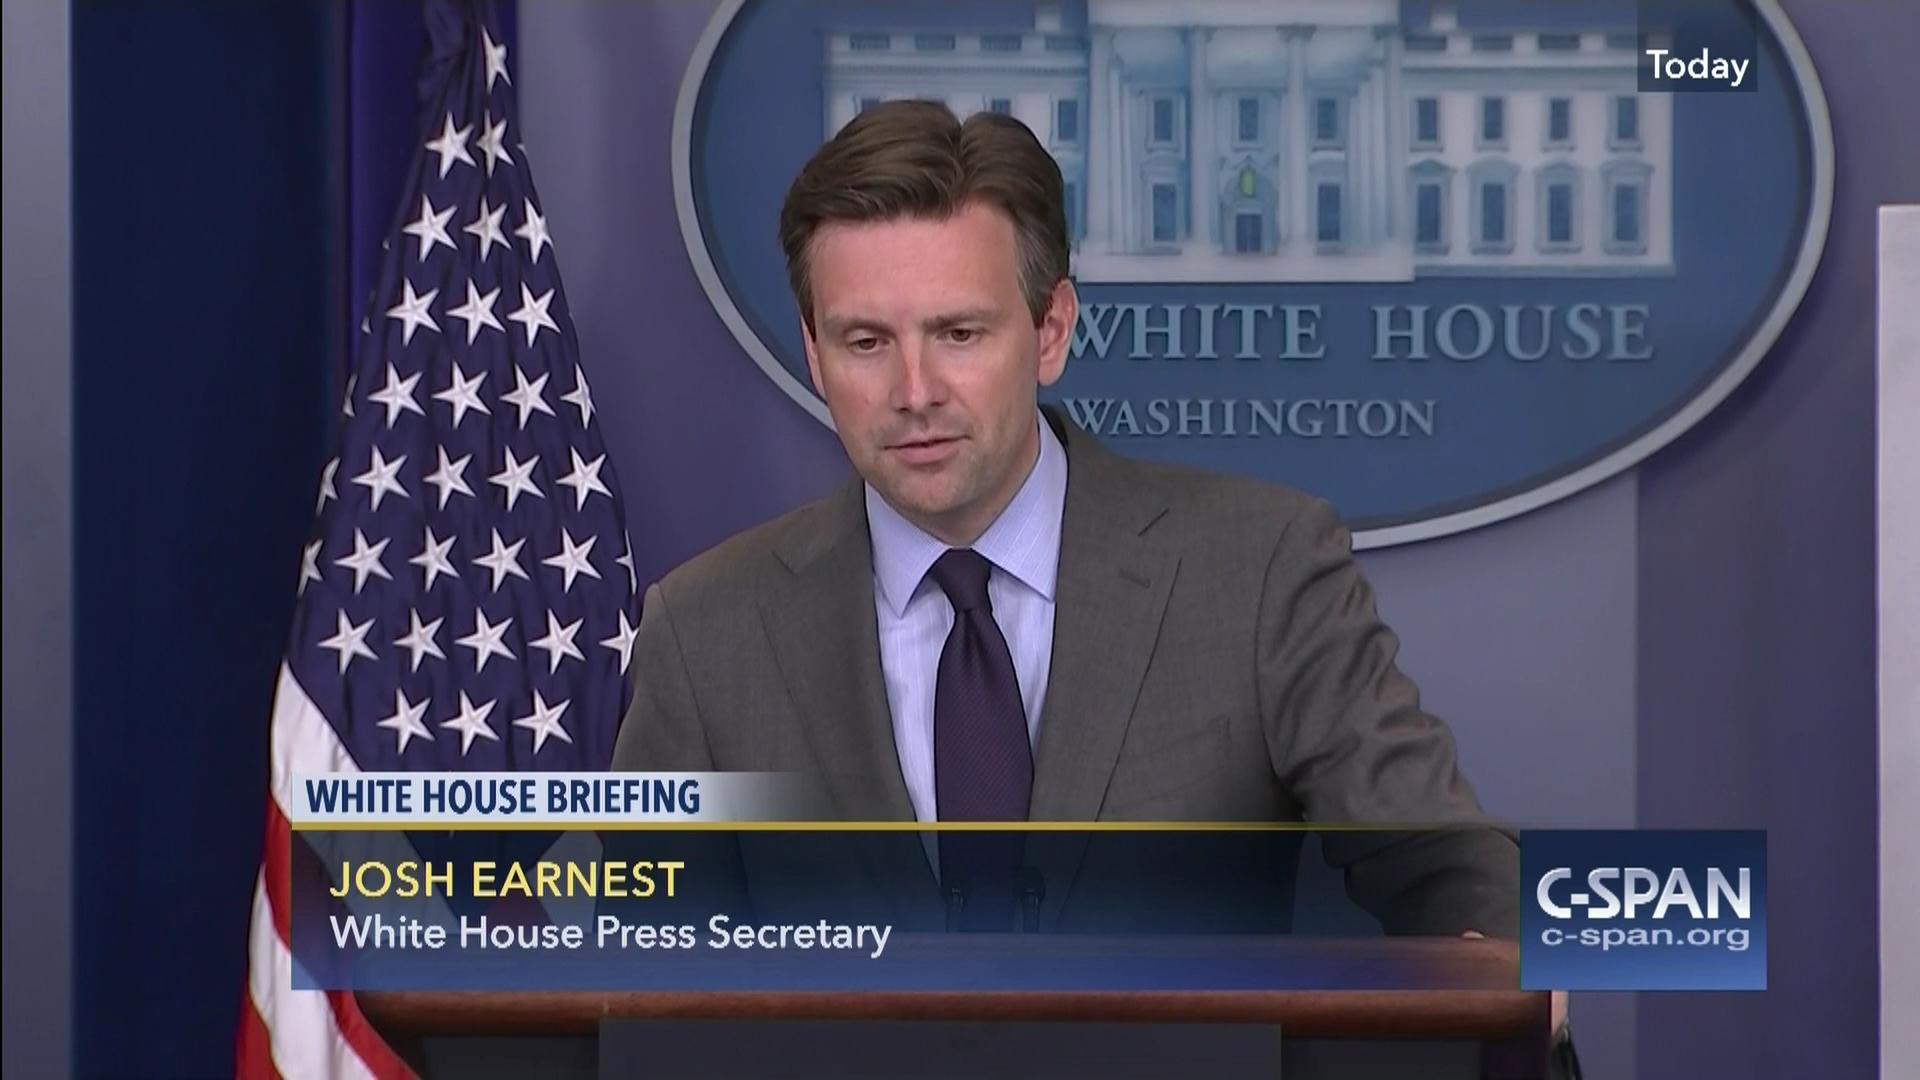 white house briefing, aug 25 2016 | video | c-span